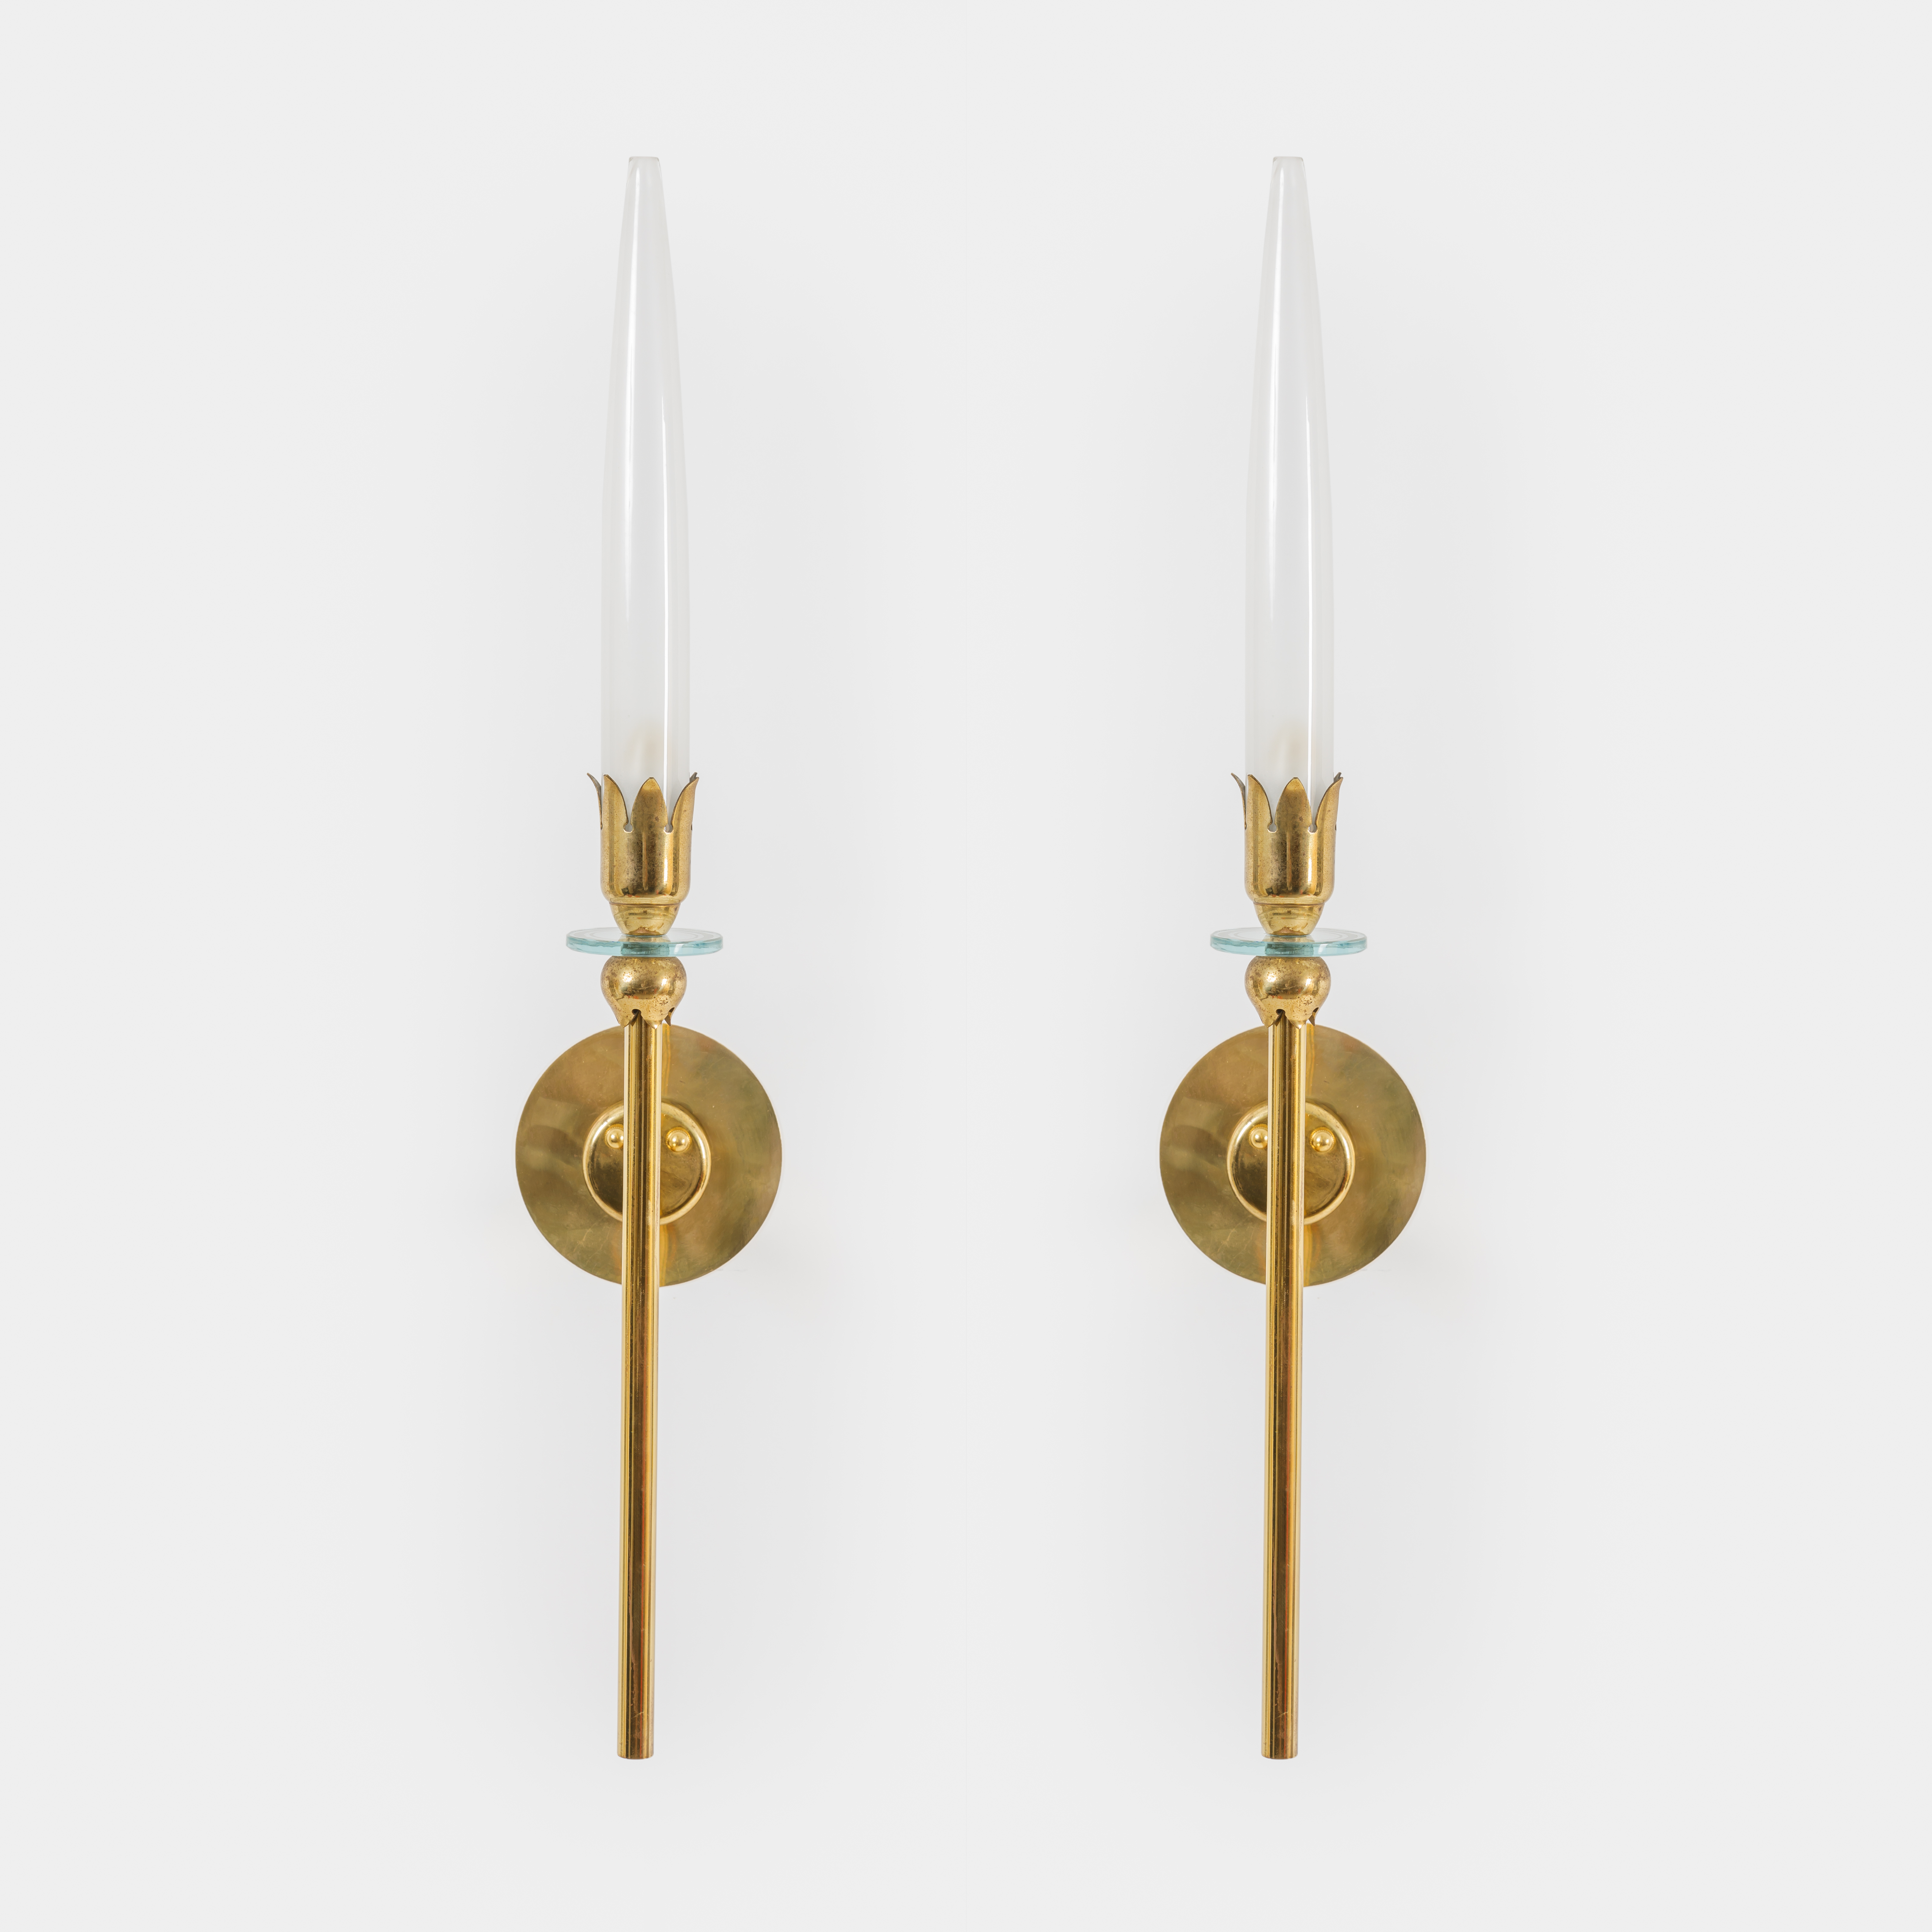 Pair of Brass and Opaline Glass Sconces by Angelo Lelii for Arredoluce | soyun k.